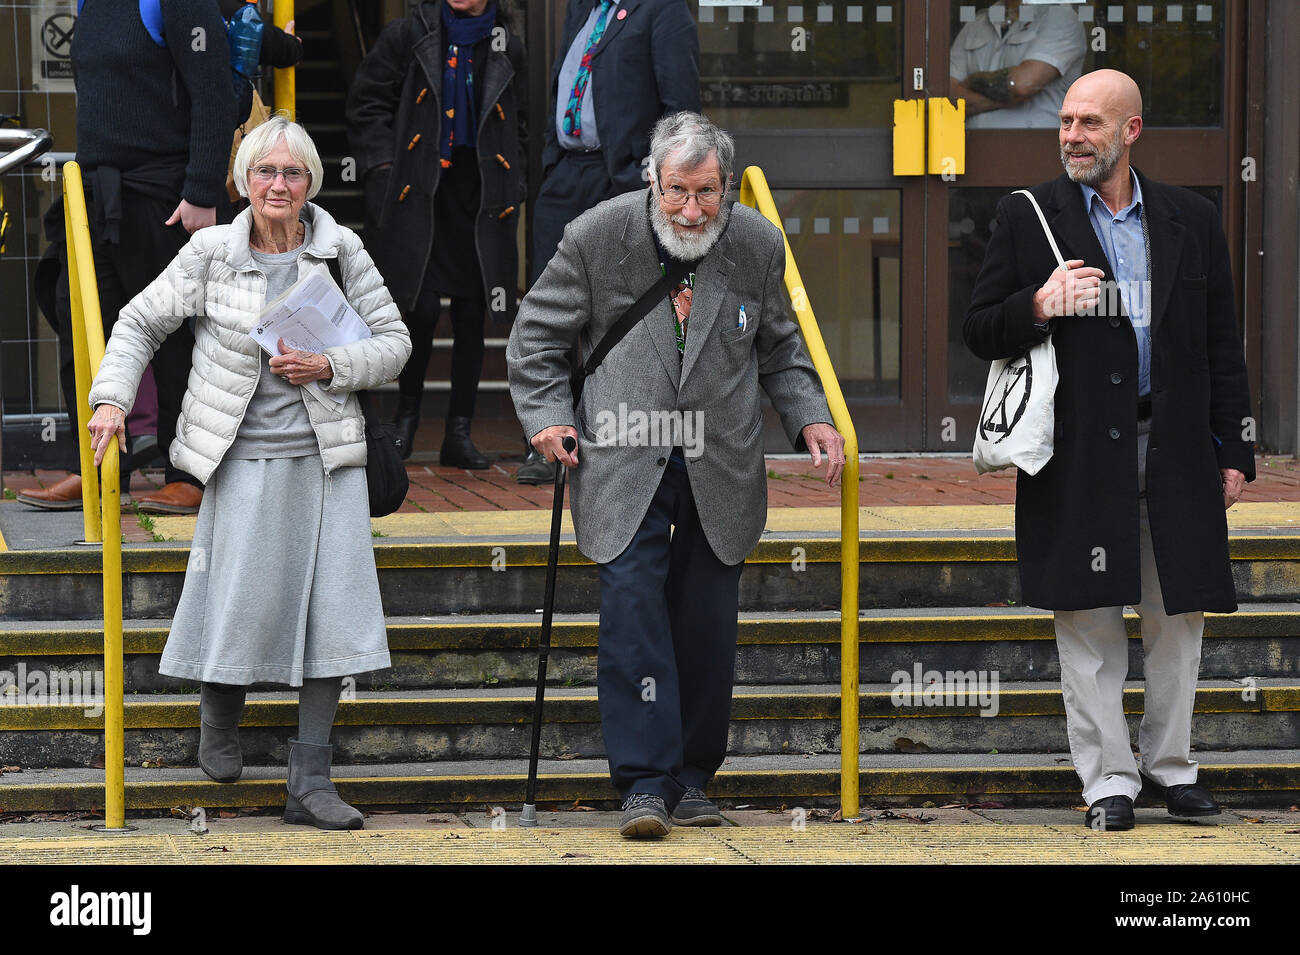 """(left to right) Extinction Rebellion activists Ursula Pethick, 83, John Lynes, 91, and John Halladay, 61, leaving Folkestone Magistrates' Court where they appeared for their part in the """"blockade"""" of the Port of Dover in September. Stock Photo"""